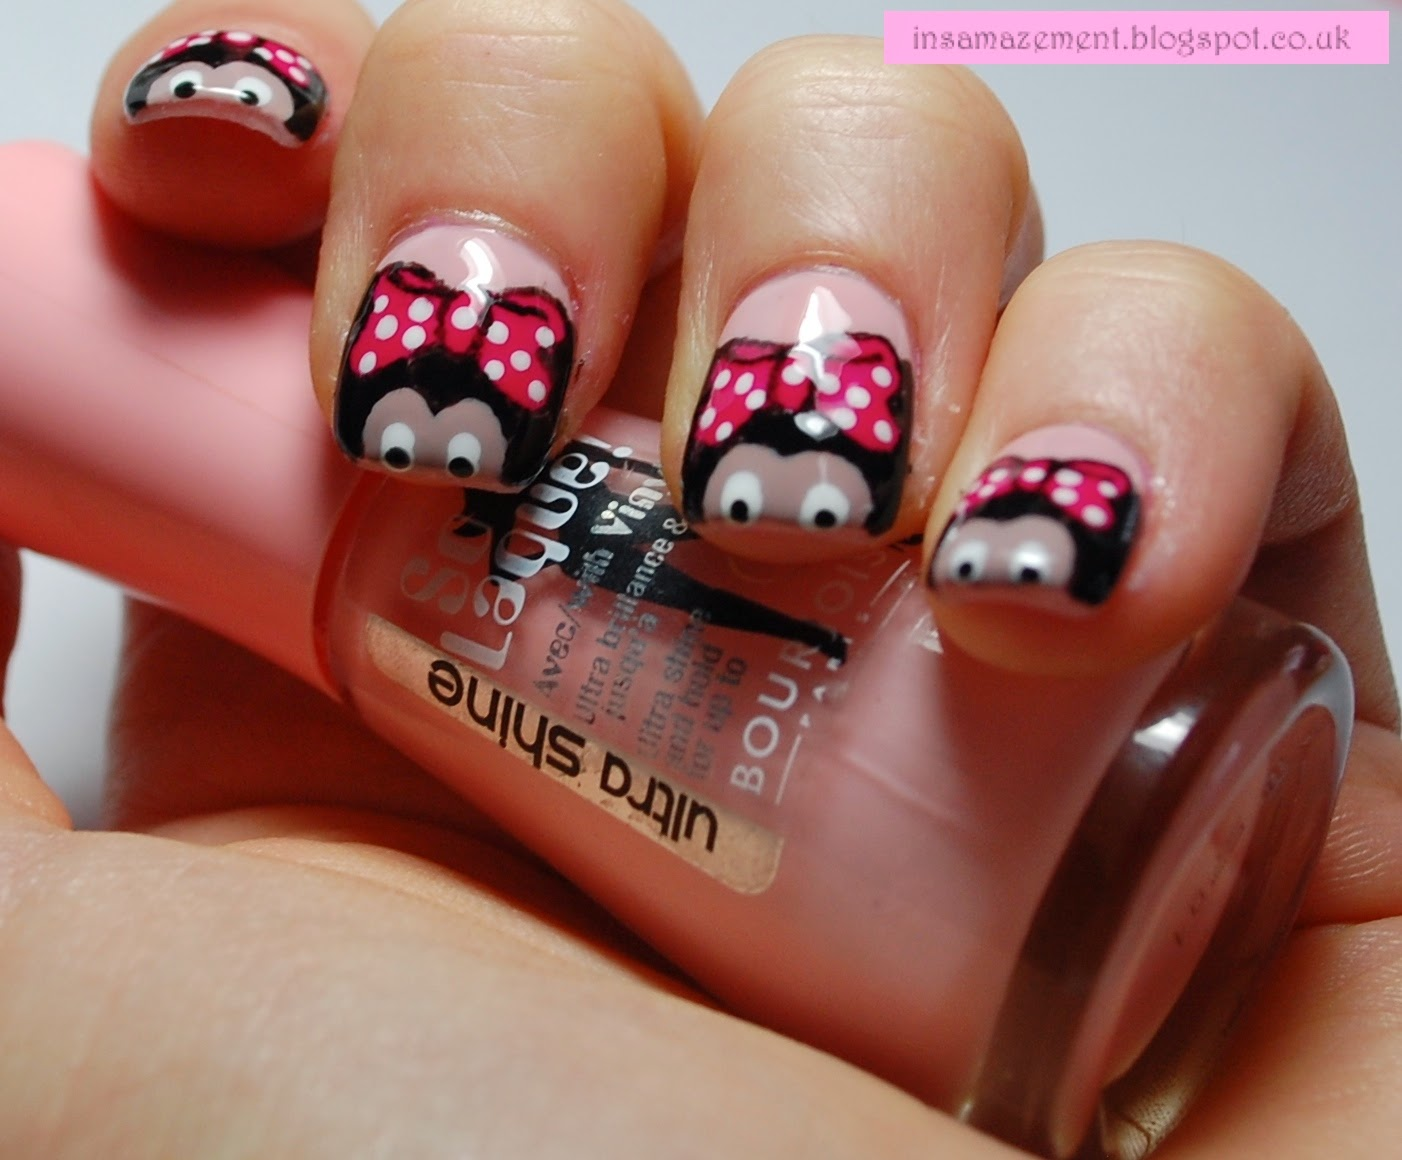 In samazement minnie mouse nail art tutorial the nail varnishes i used were illamasqua top coat boosh and scorch bourjois rose satin nails inc porchester square and barry m shocking pink prinsesfo Choice Image